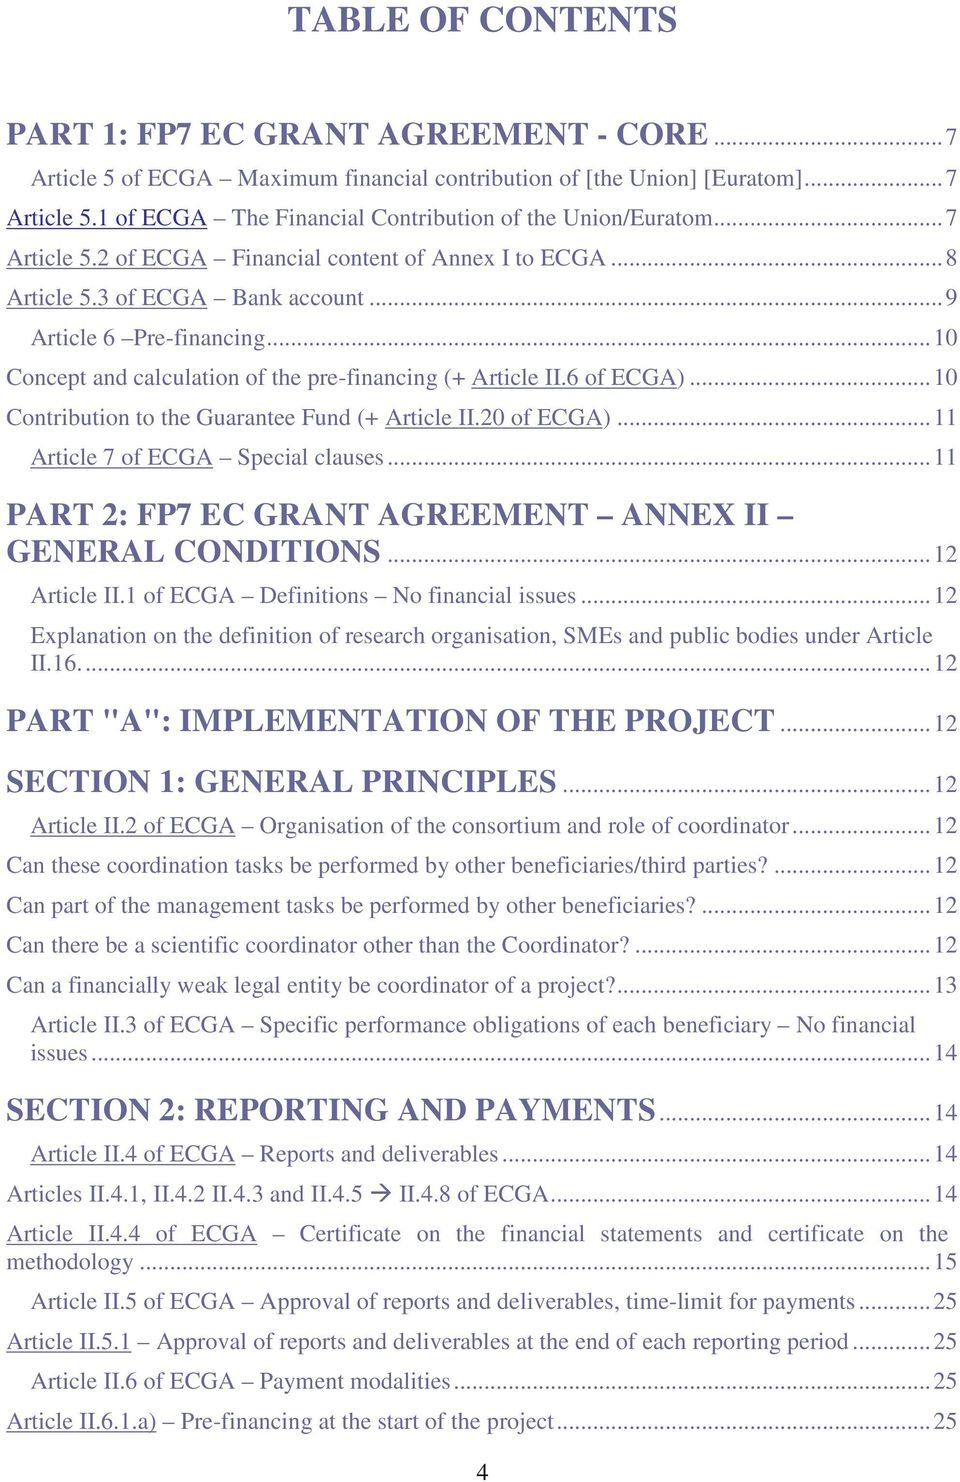 6 of ECGA)... 10 Contribution to the Guarantee Fund (+ Article II.20 of ECGA)... 11 Article 7 of ECGA Special clauses... 11 PART 2: FP7 EC GRANT AGREEMENT ANNEX II GENERAL CONDITIONS... 12 Article II.